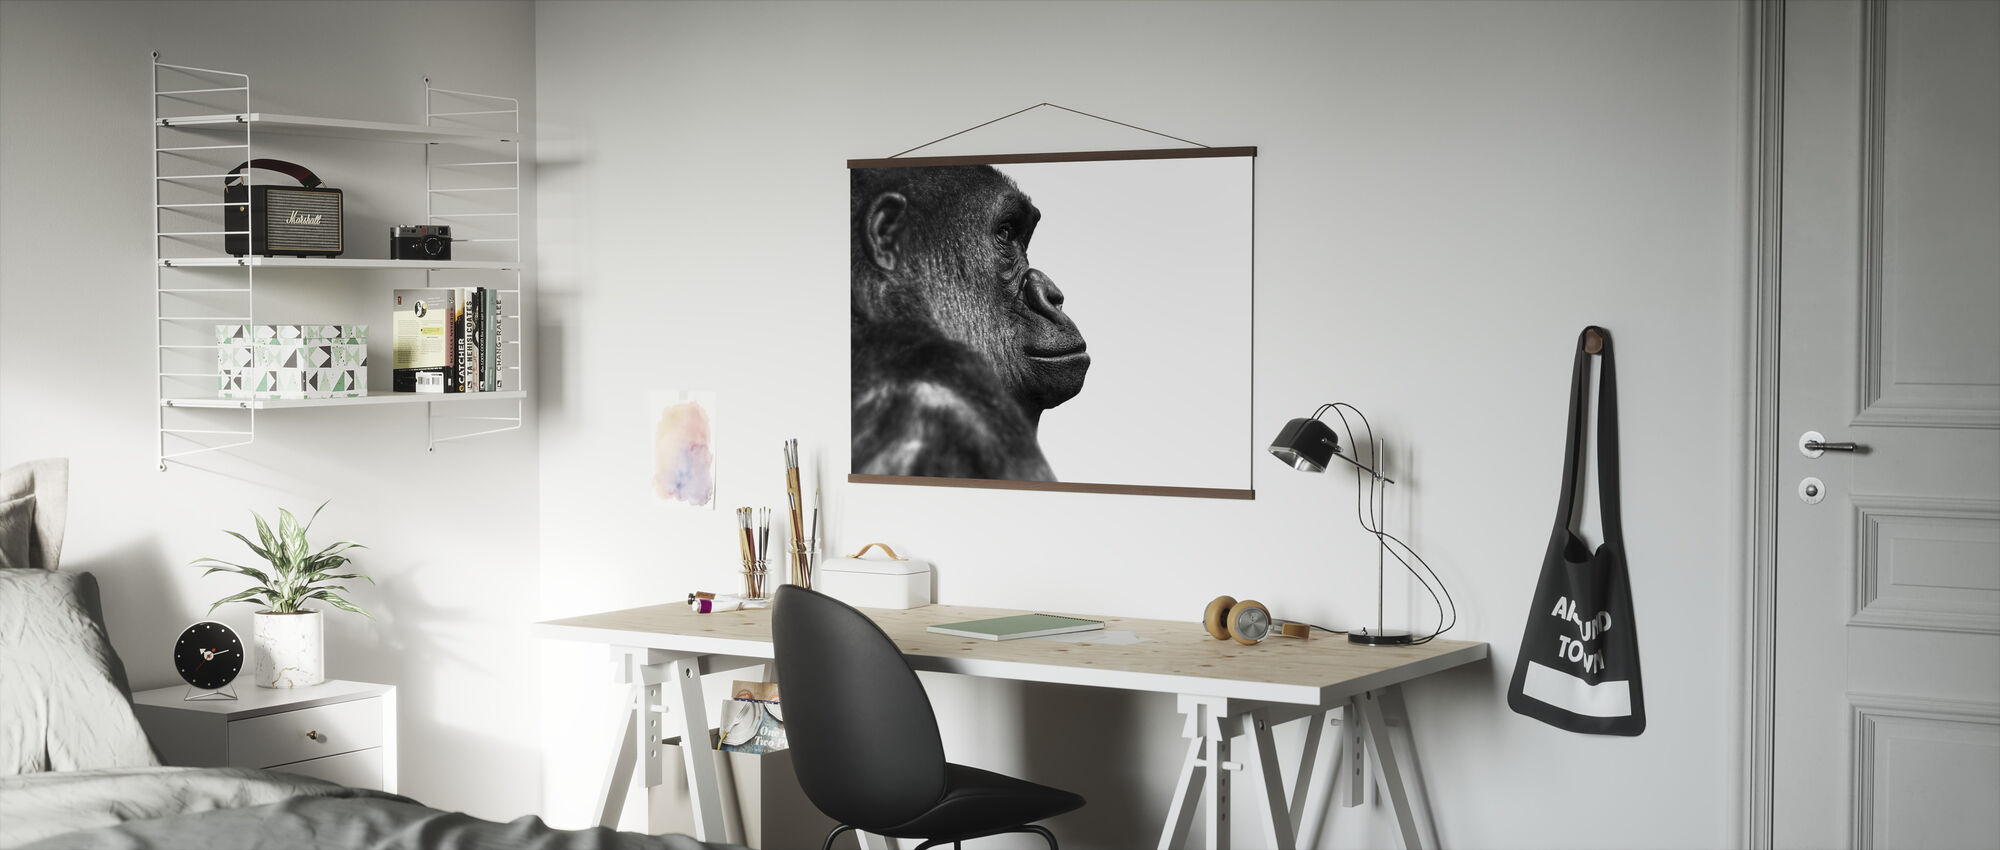 Gorilla - b/w - Poster - Office